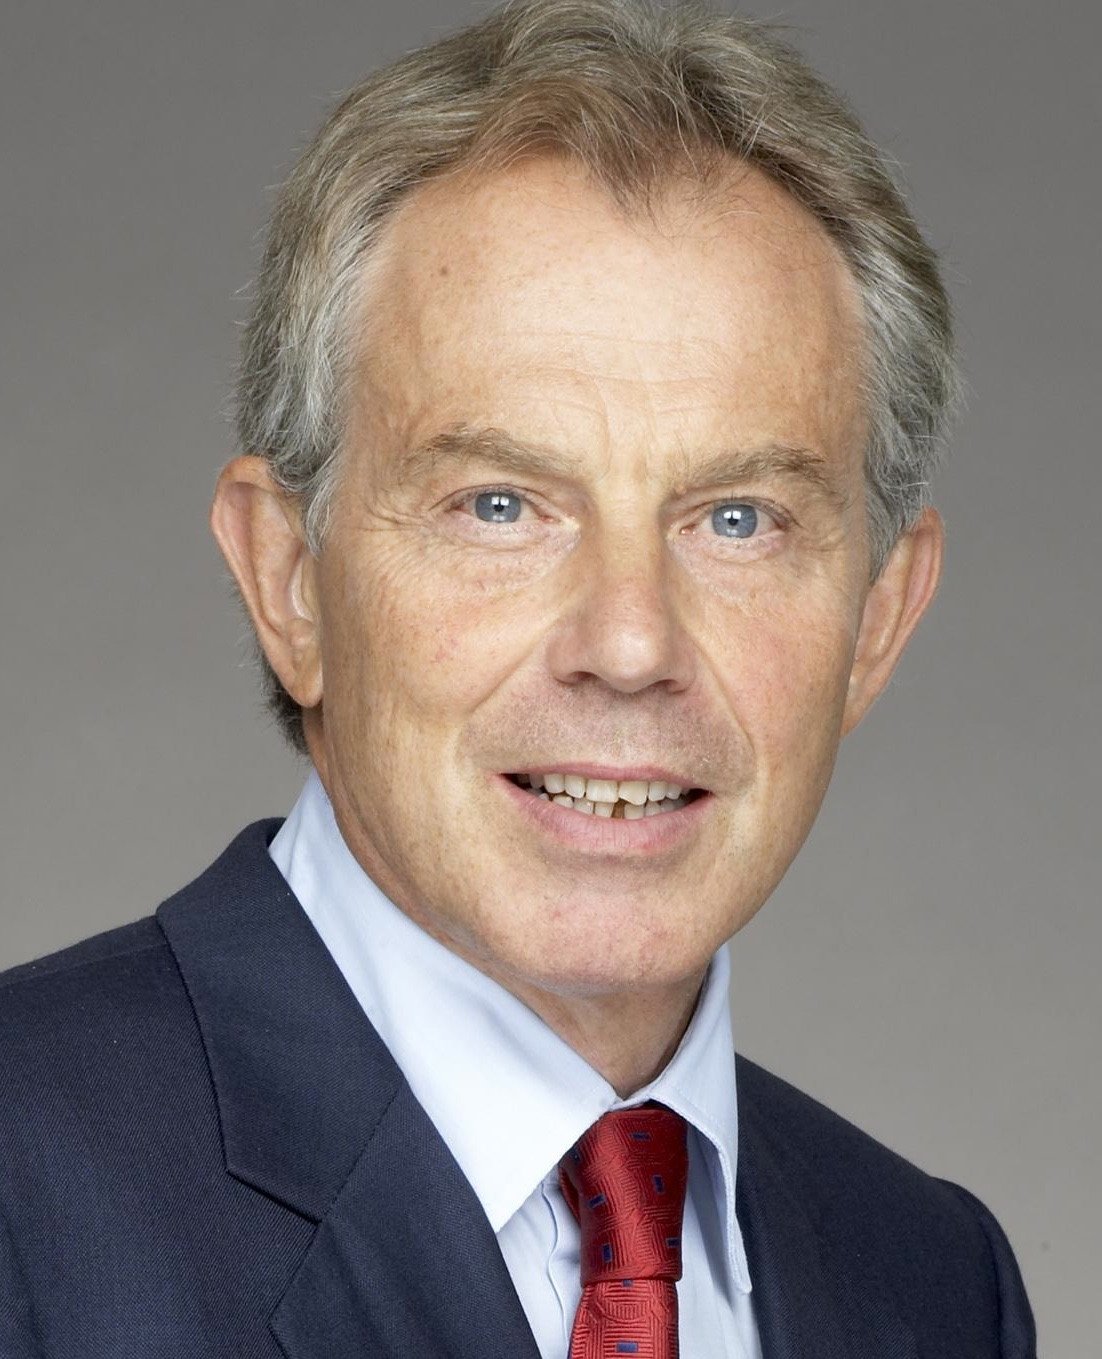 an analysis of the new labor by tony blair united kingdom prime minister The greater use of referendums has continued since tony blair's new labour was  elected  united kingdom referendum, 1975, on whether the uk should remain  part of the  indeed, it is noteworthy that the labour prime minister harold  a  similar analysis, it might be argued, could be made for the decision to hold a.